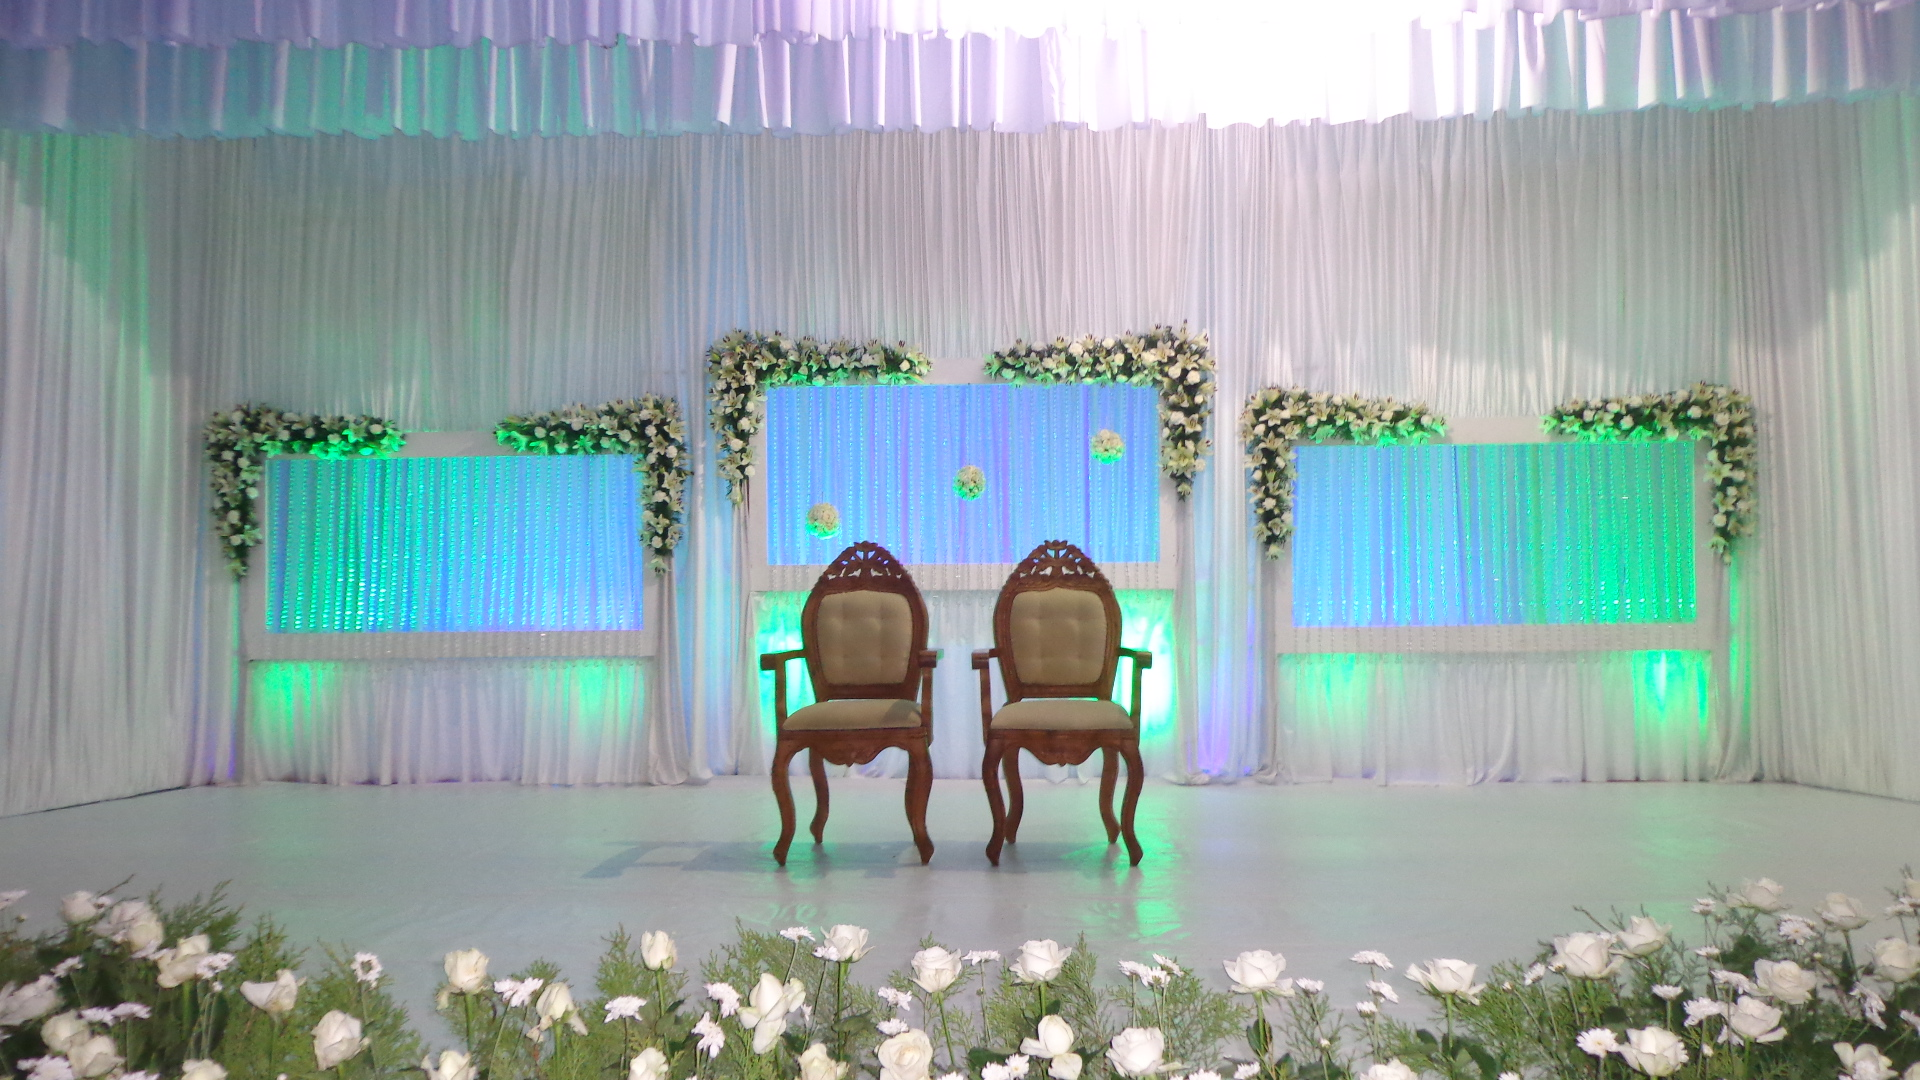 decorations stage decor decoration wedding planners cabbon reception